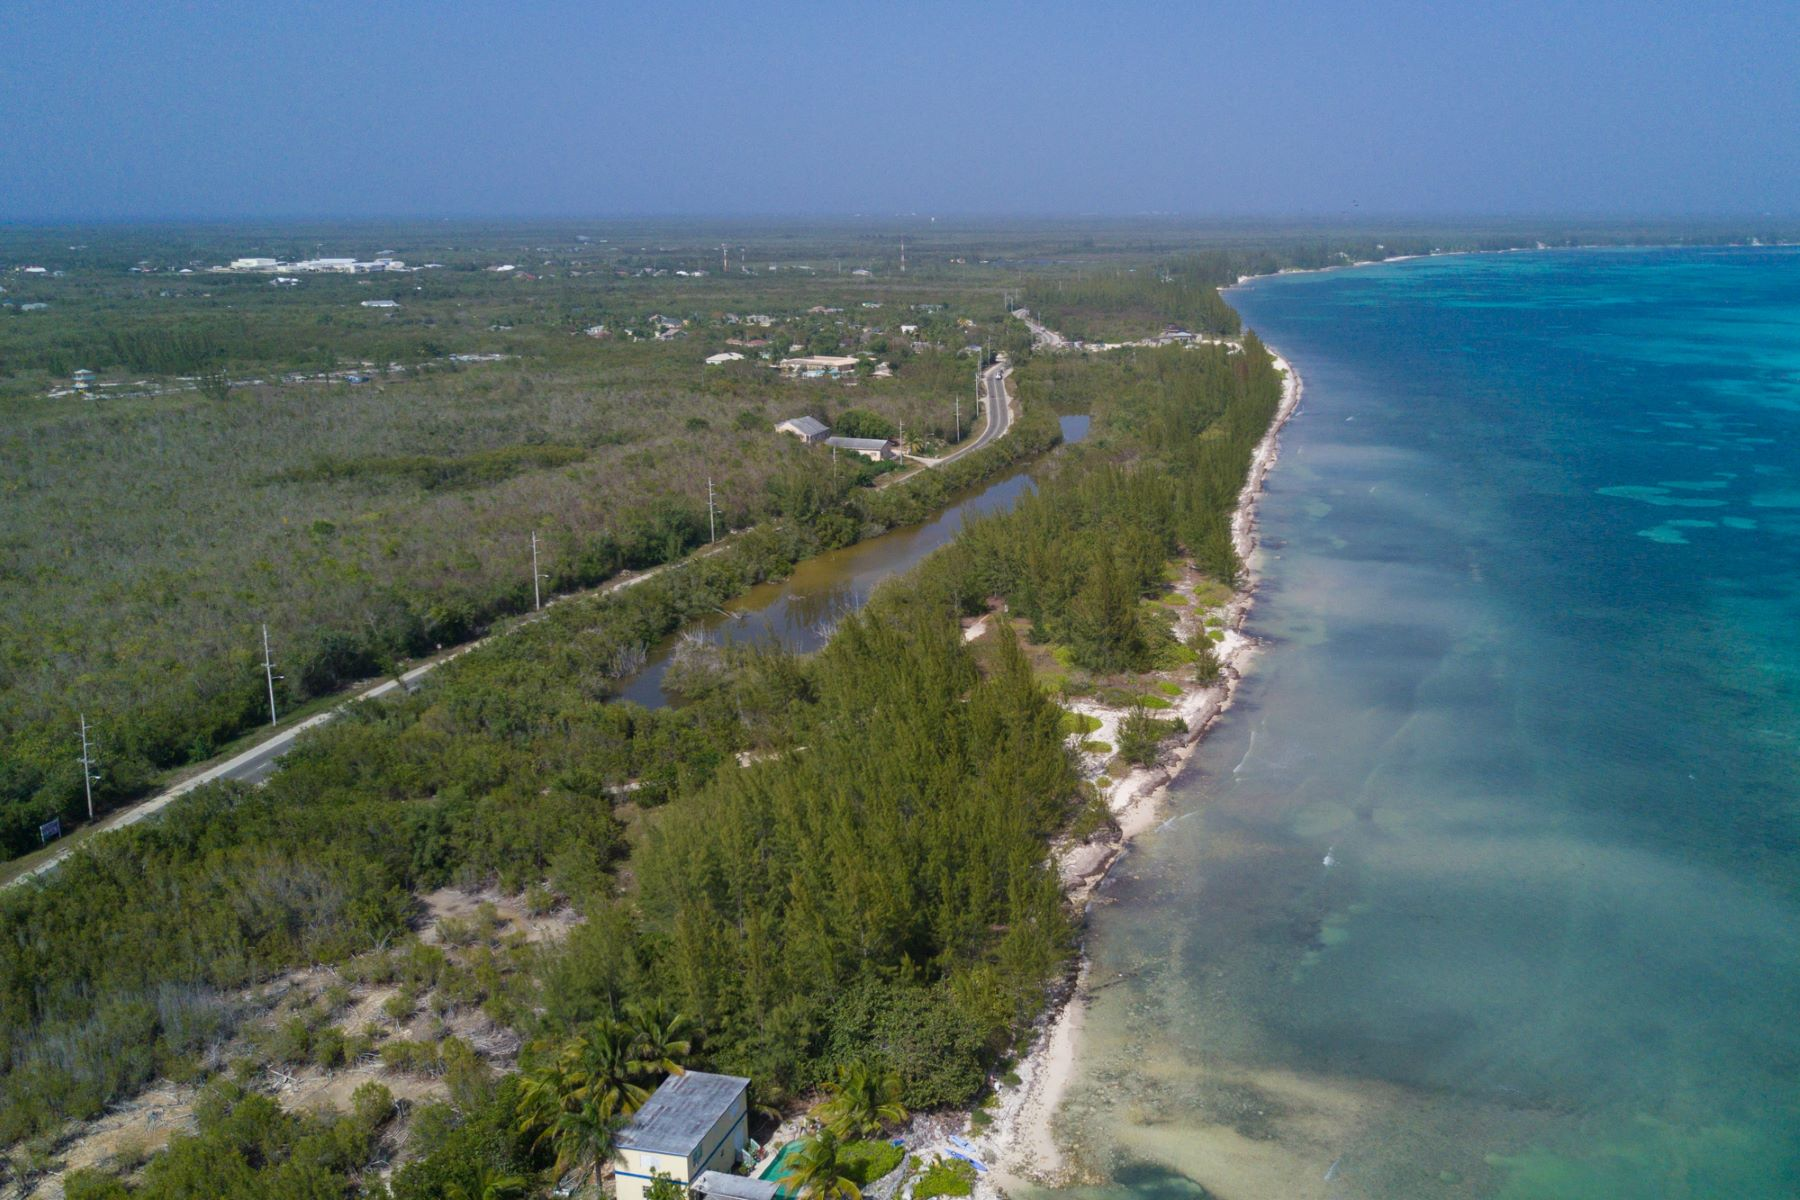 Terreno por un Venta en Breakers Ocean Front Land Other Cayman Islands, Otras Áreas En Las Islas Caimán Islas Caimán